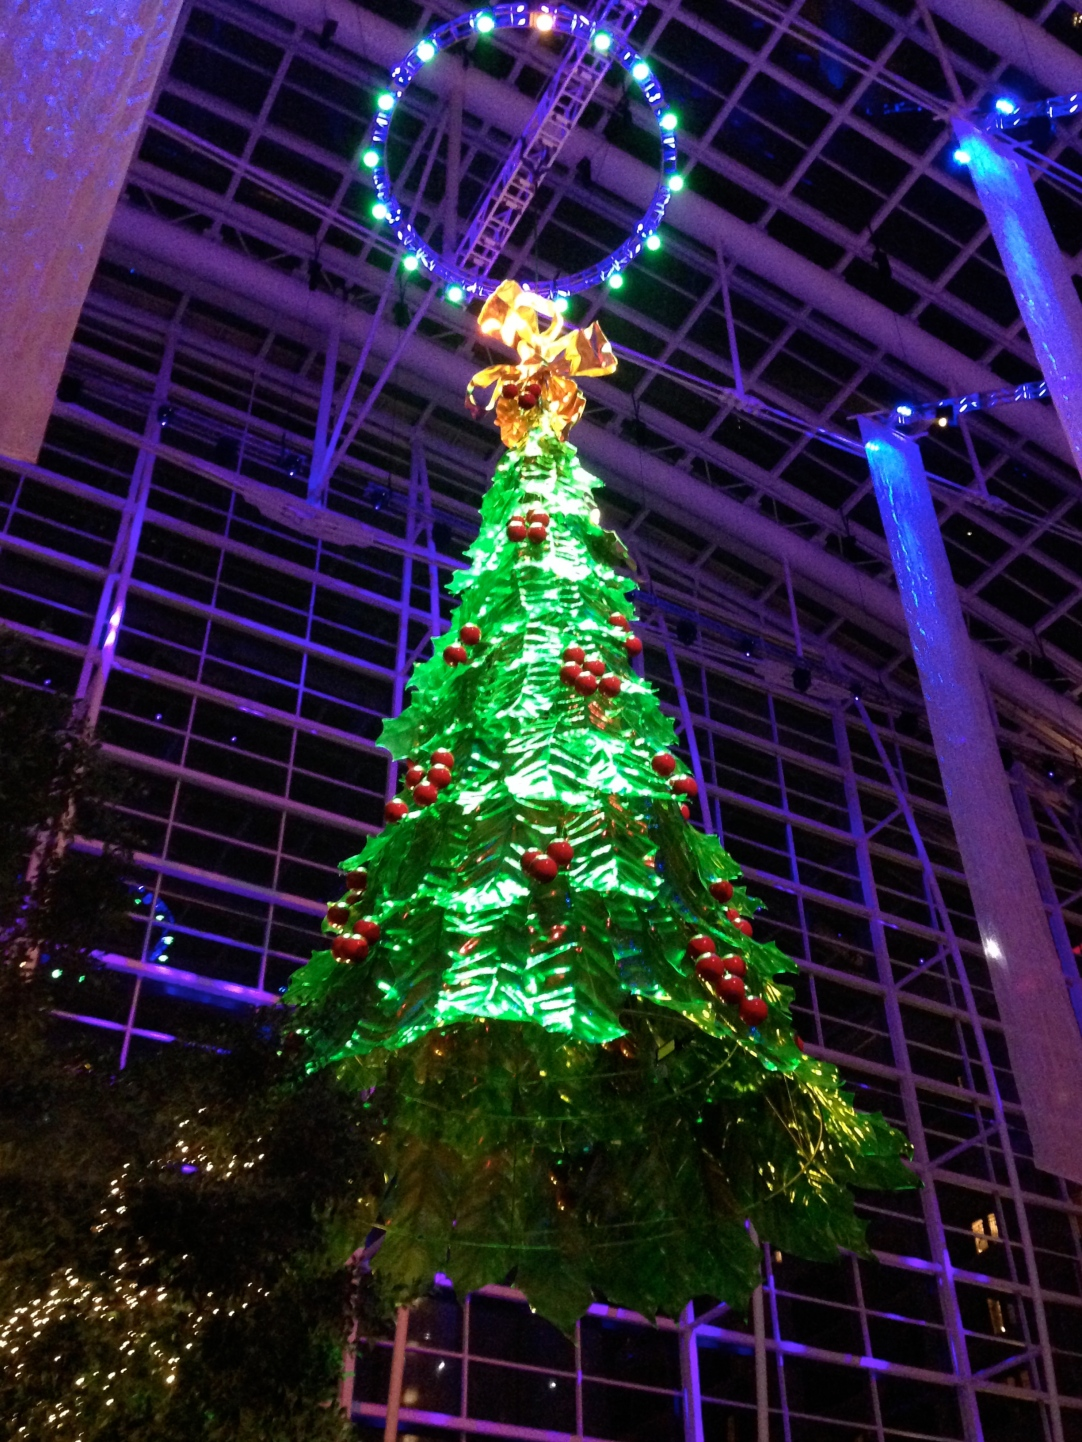 The 60ft glass tree, suspended in the atrium.